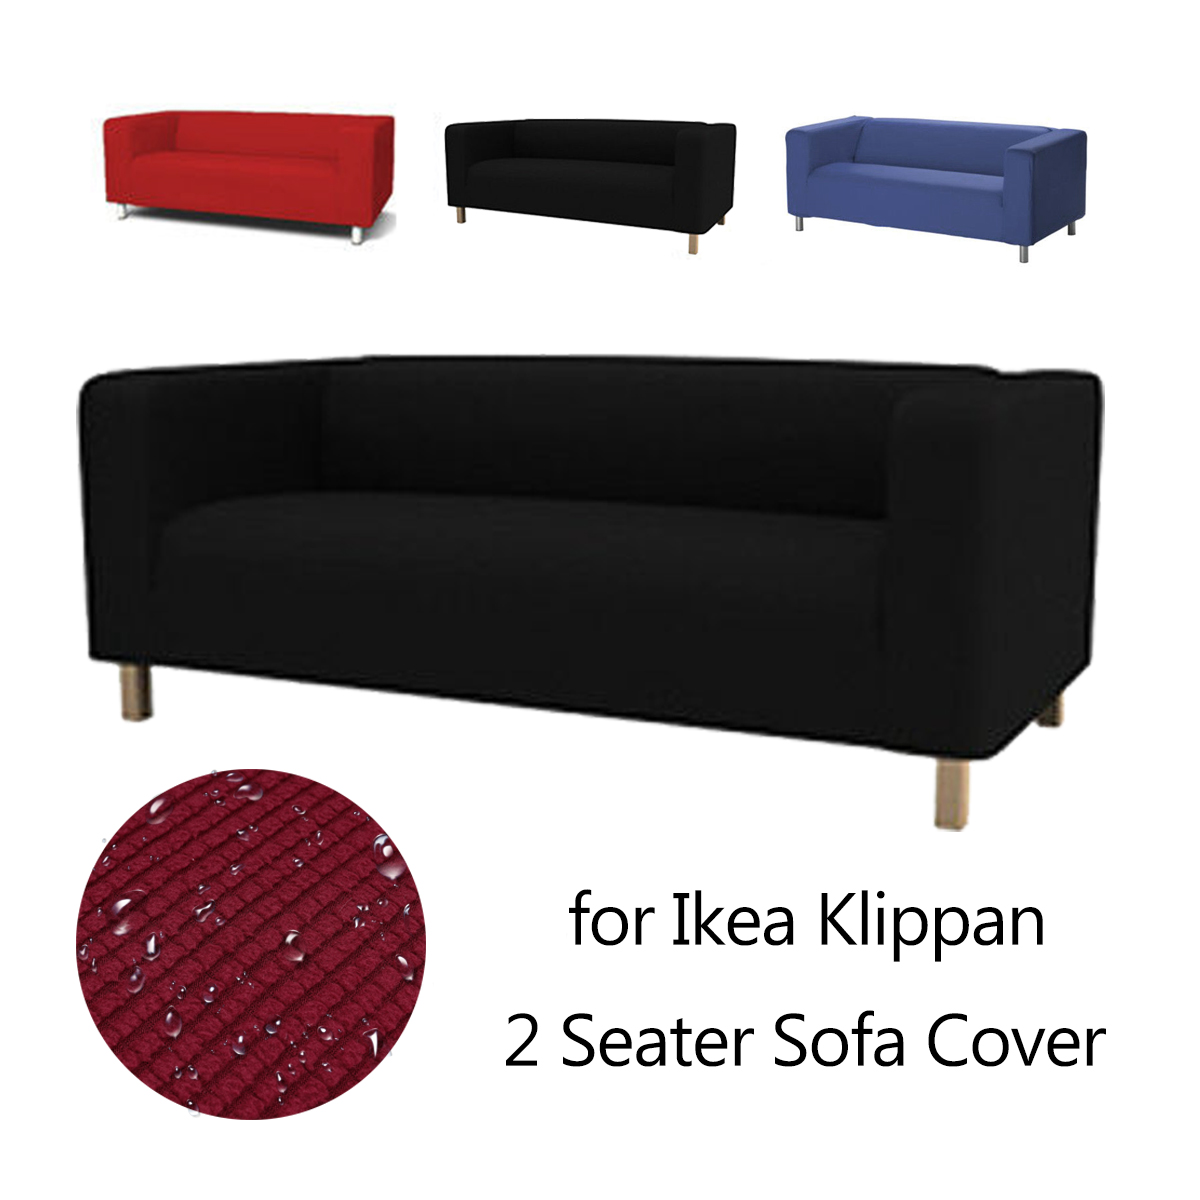 Ikea Sofa Klippan Details About Slipcover For Ikea Klippan 2 Seater Sofa Couch Cover Throw Loveseat Chair Cotton